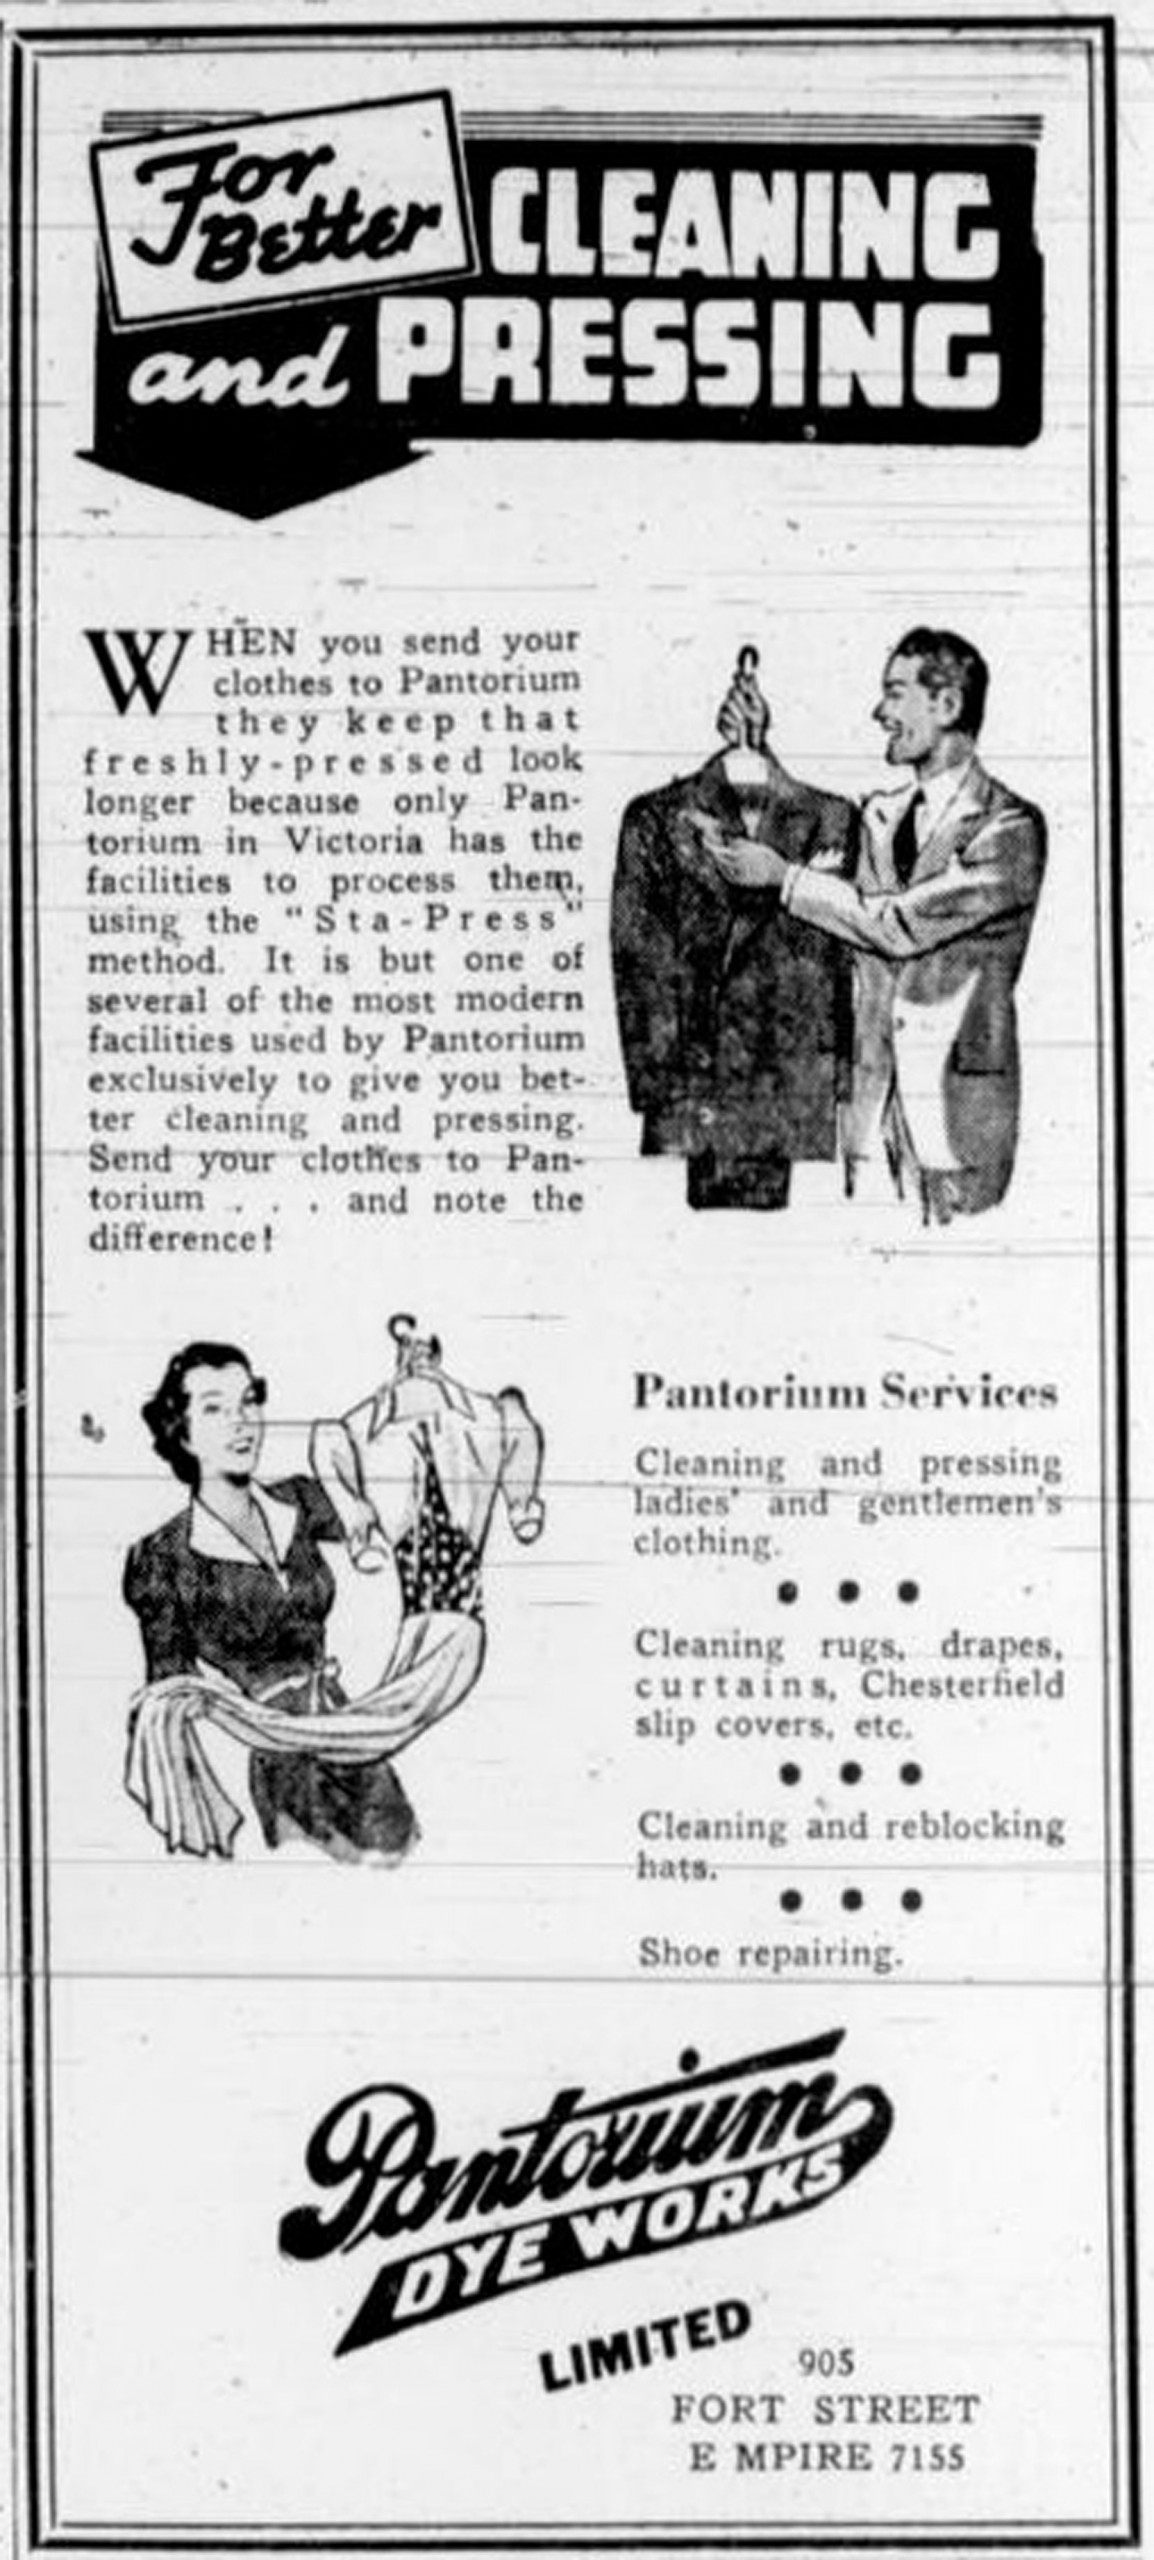 1938 advertisement for Pantorium Dye Works, 905 Fort Street.